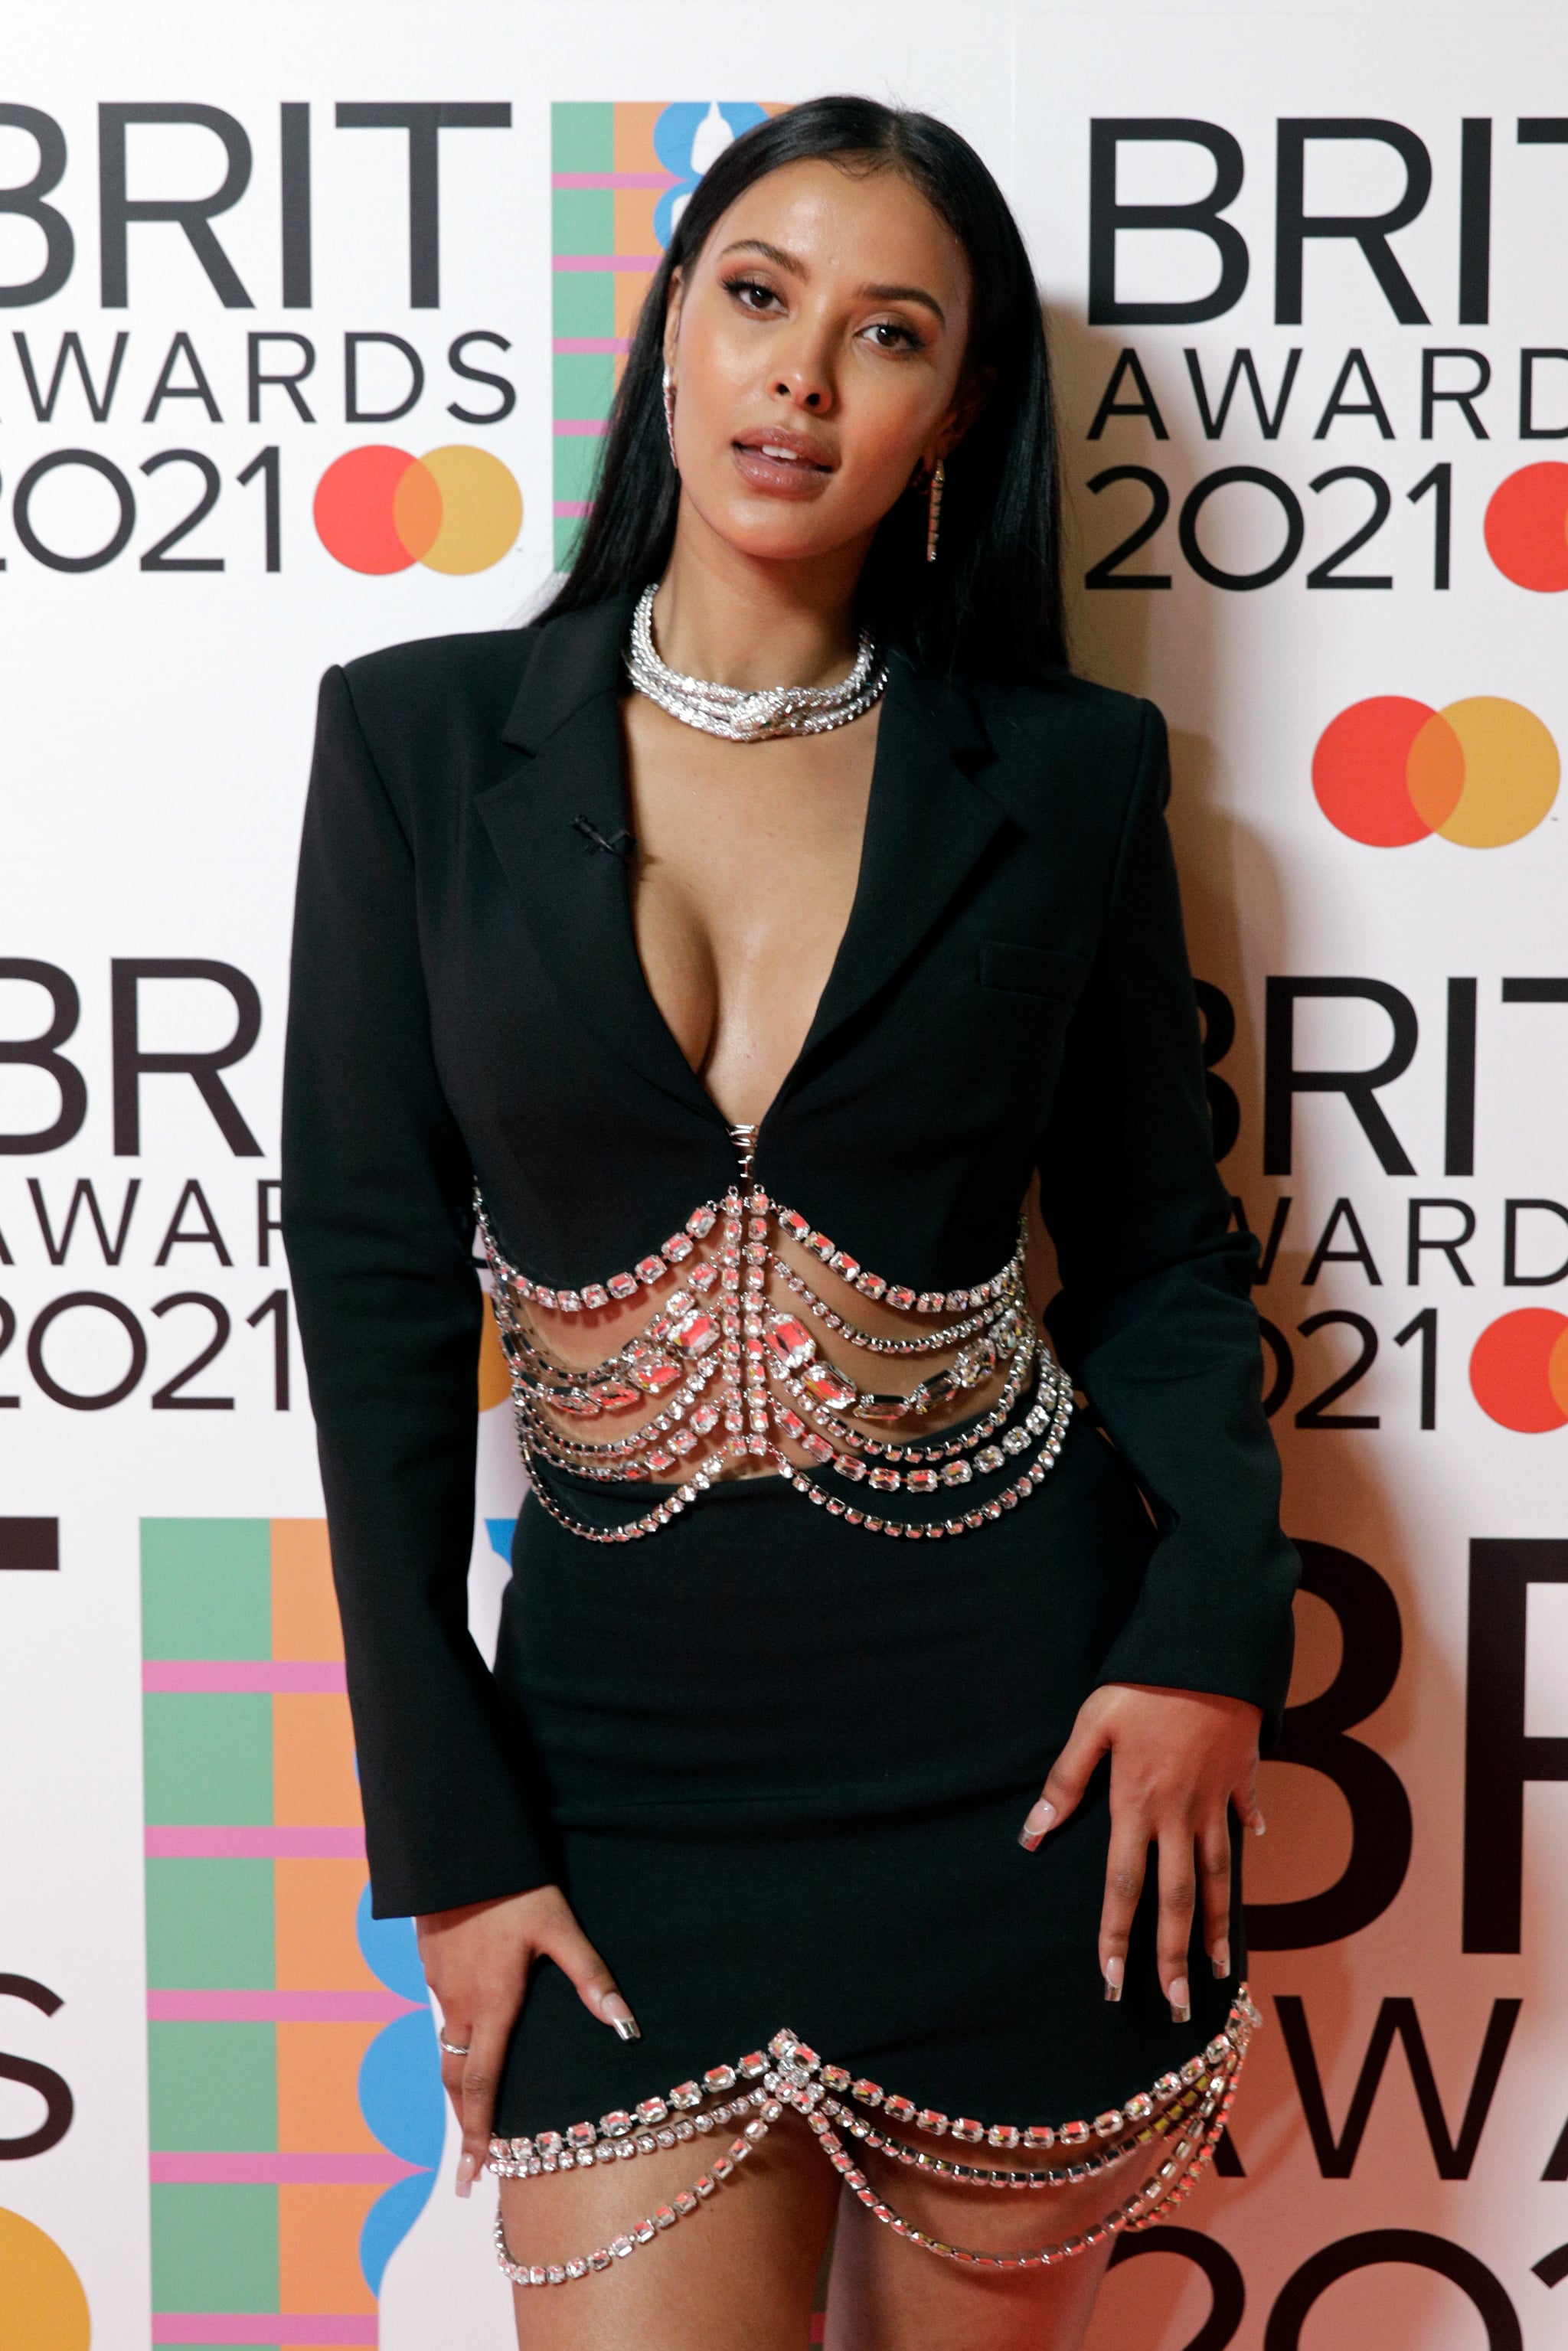 LONDON, ENGLAND - MAY 11: Maya Jama poses in the media room during The BRIT Awards 2021 at The O2 Arena on May 11, 2021 in London, England. (Photo by JMEnternational/JMEnternational for BRIT Awards/Getty Images)